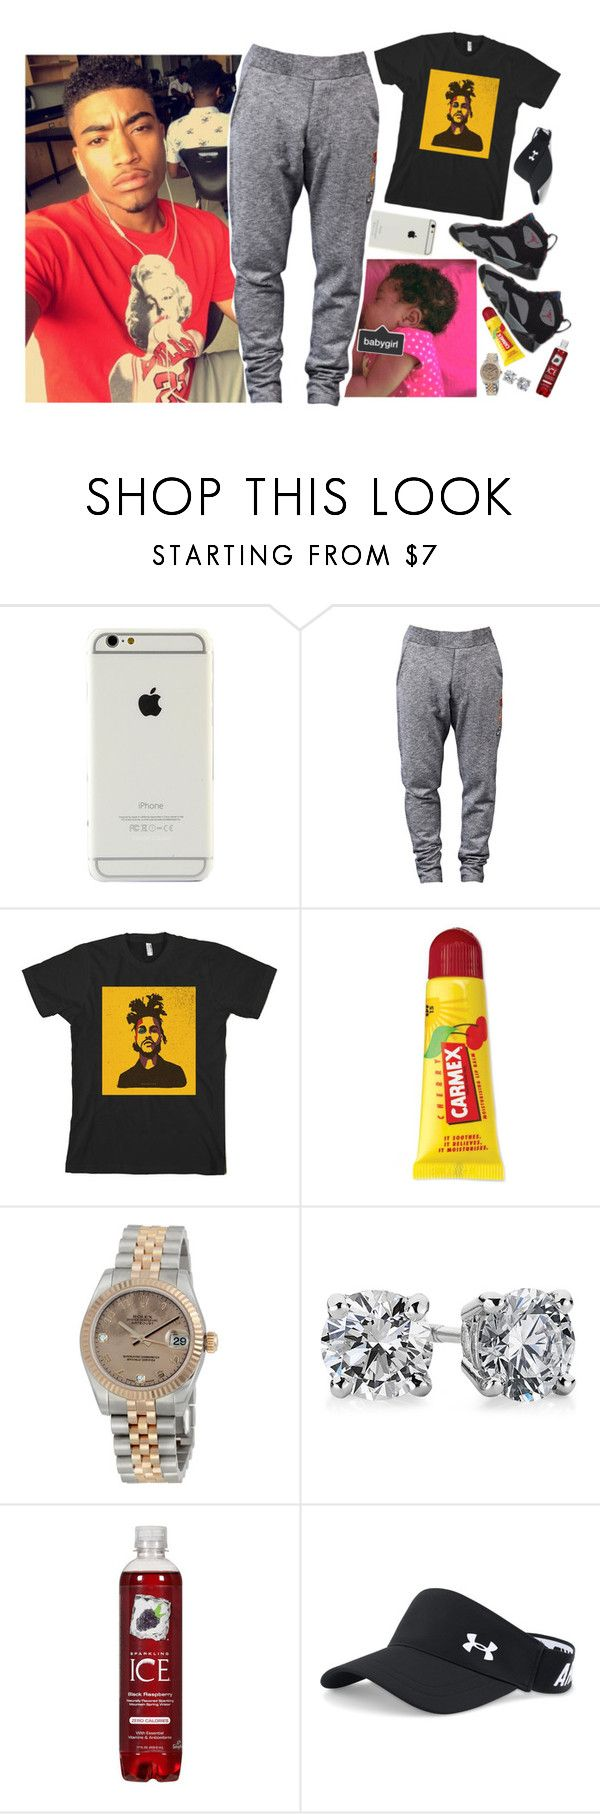 """O7 ) "" i got my glizzy on my hip , just in case a p.ussy n.igga try to hit a lick ."""" by let-the-beast-be-unleashed ❤ liked on Polyvore featuring Vivienne Westwood, Retrò, Carmex, Rolex, Blue Nile, Under Armour, men's fashion, menswear and daddylorenz"